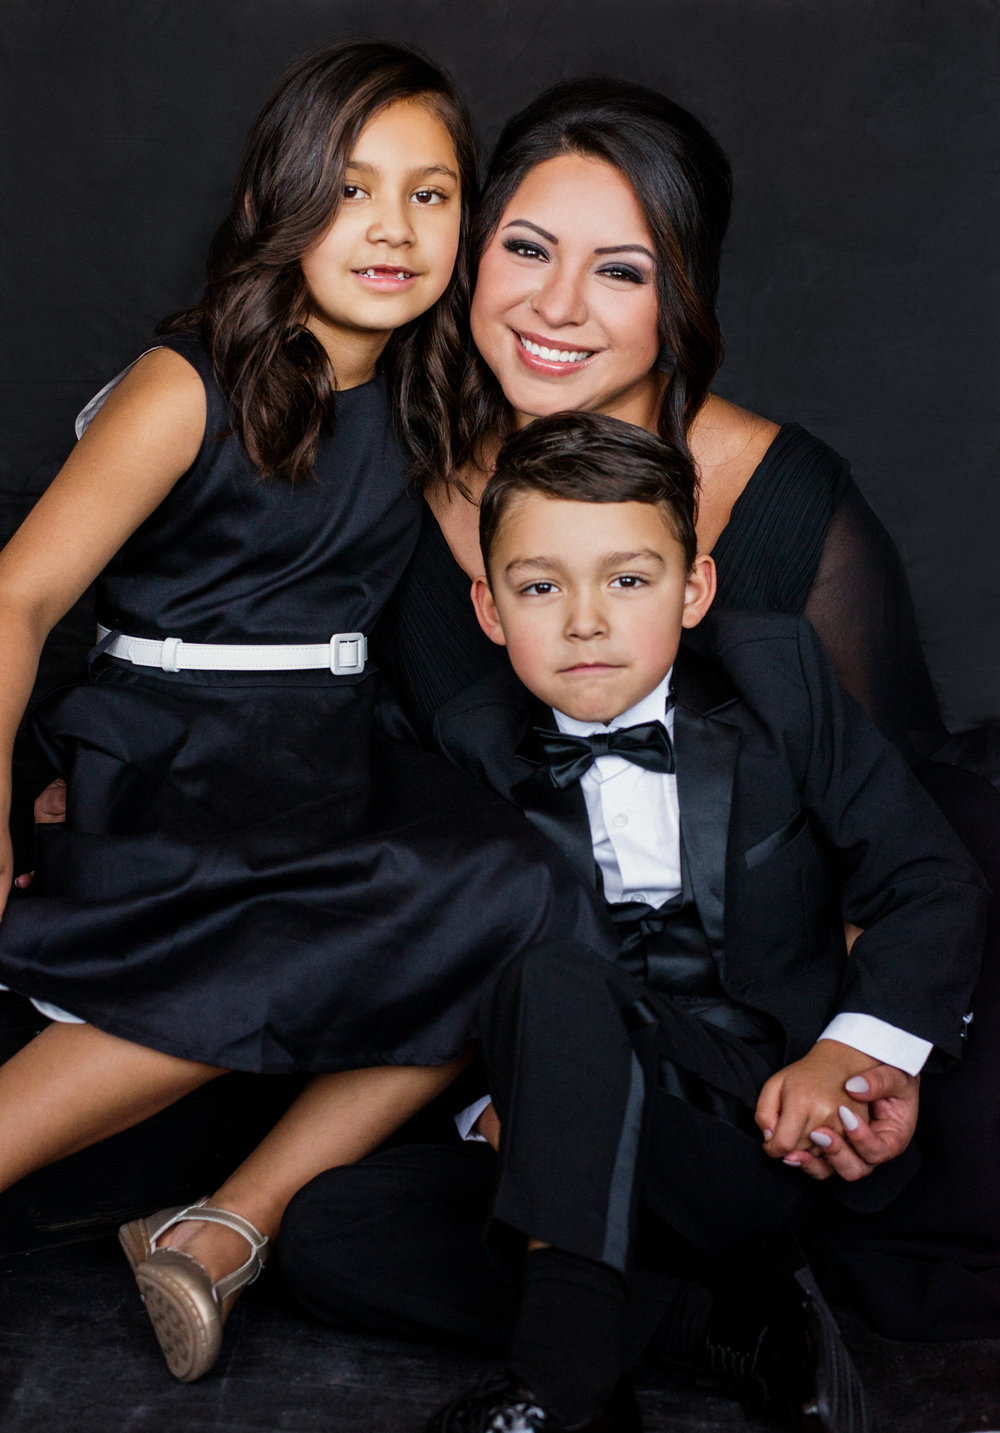 20 minute photo session - For your family with your choice of a dark and classy backdrop or bright and airy! Did we mention you will get to choose your photos immediately after your photo shoot?